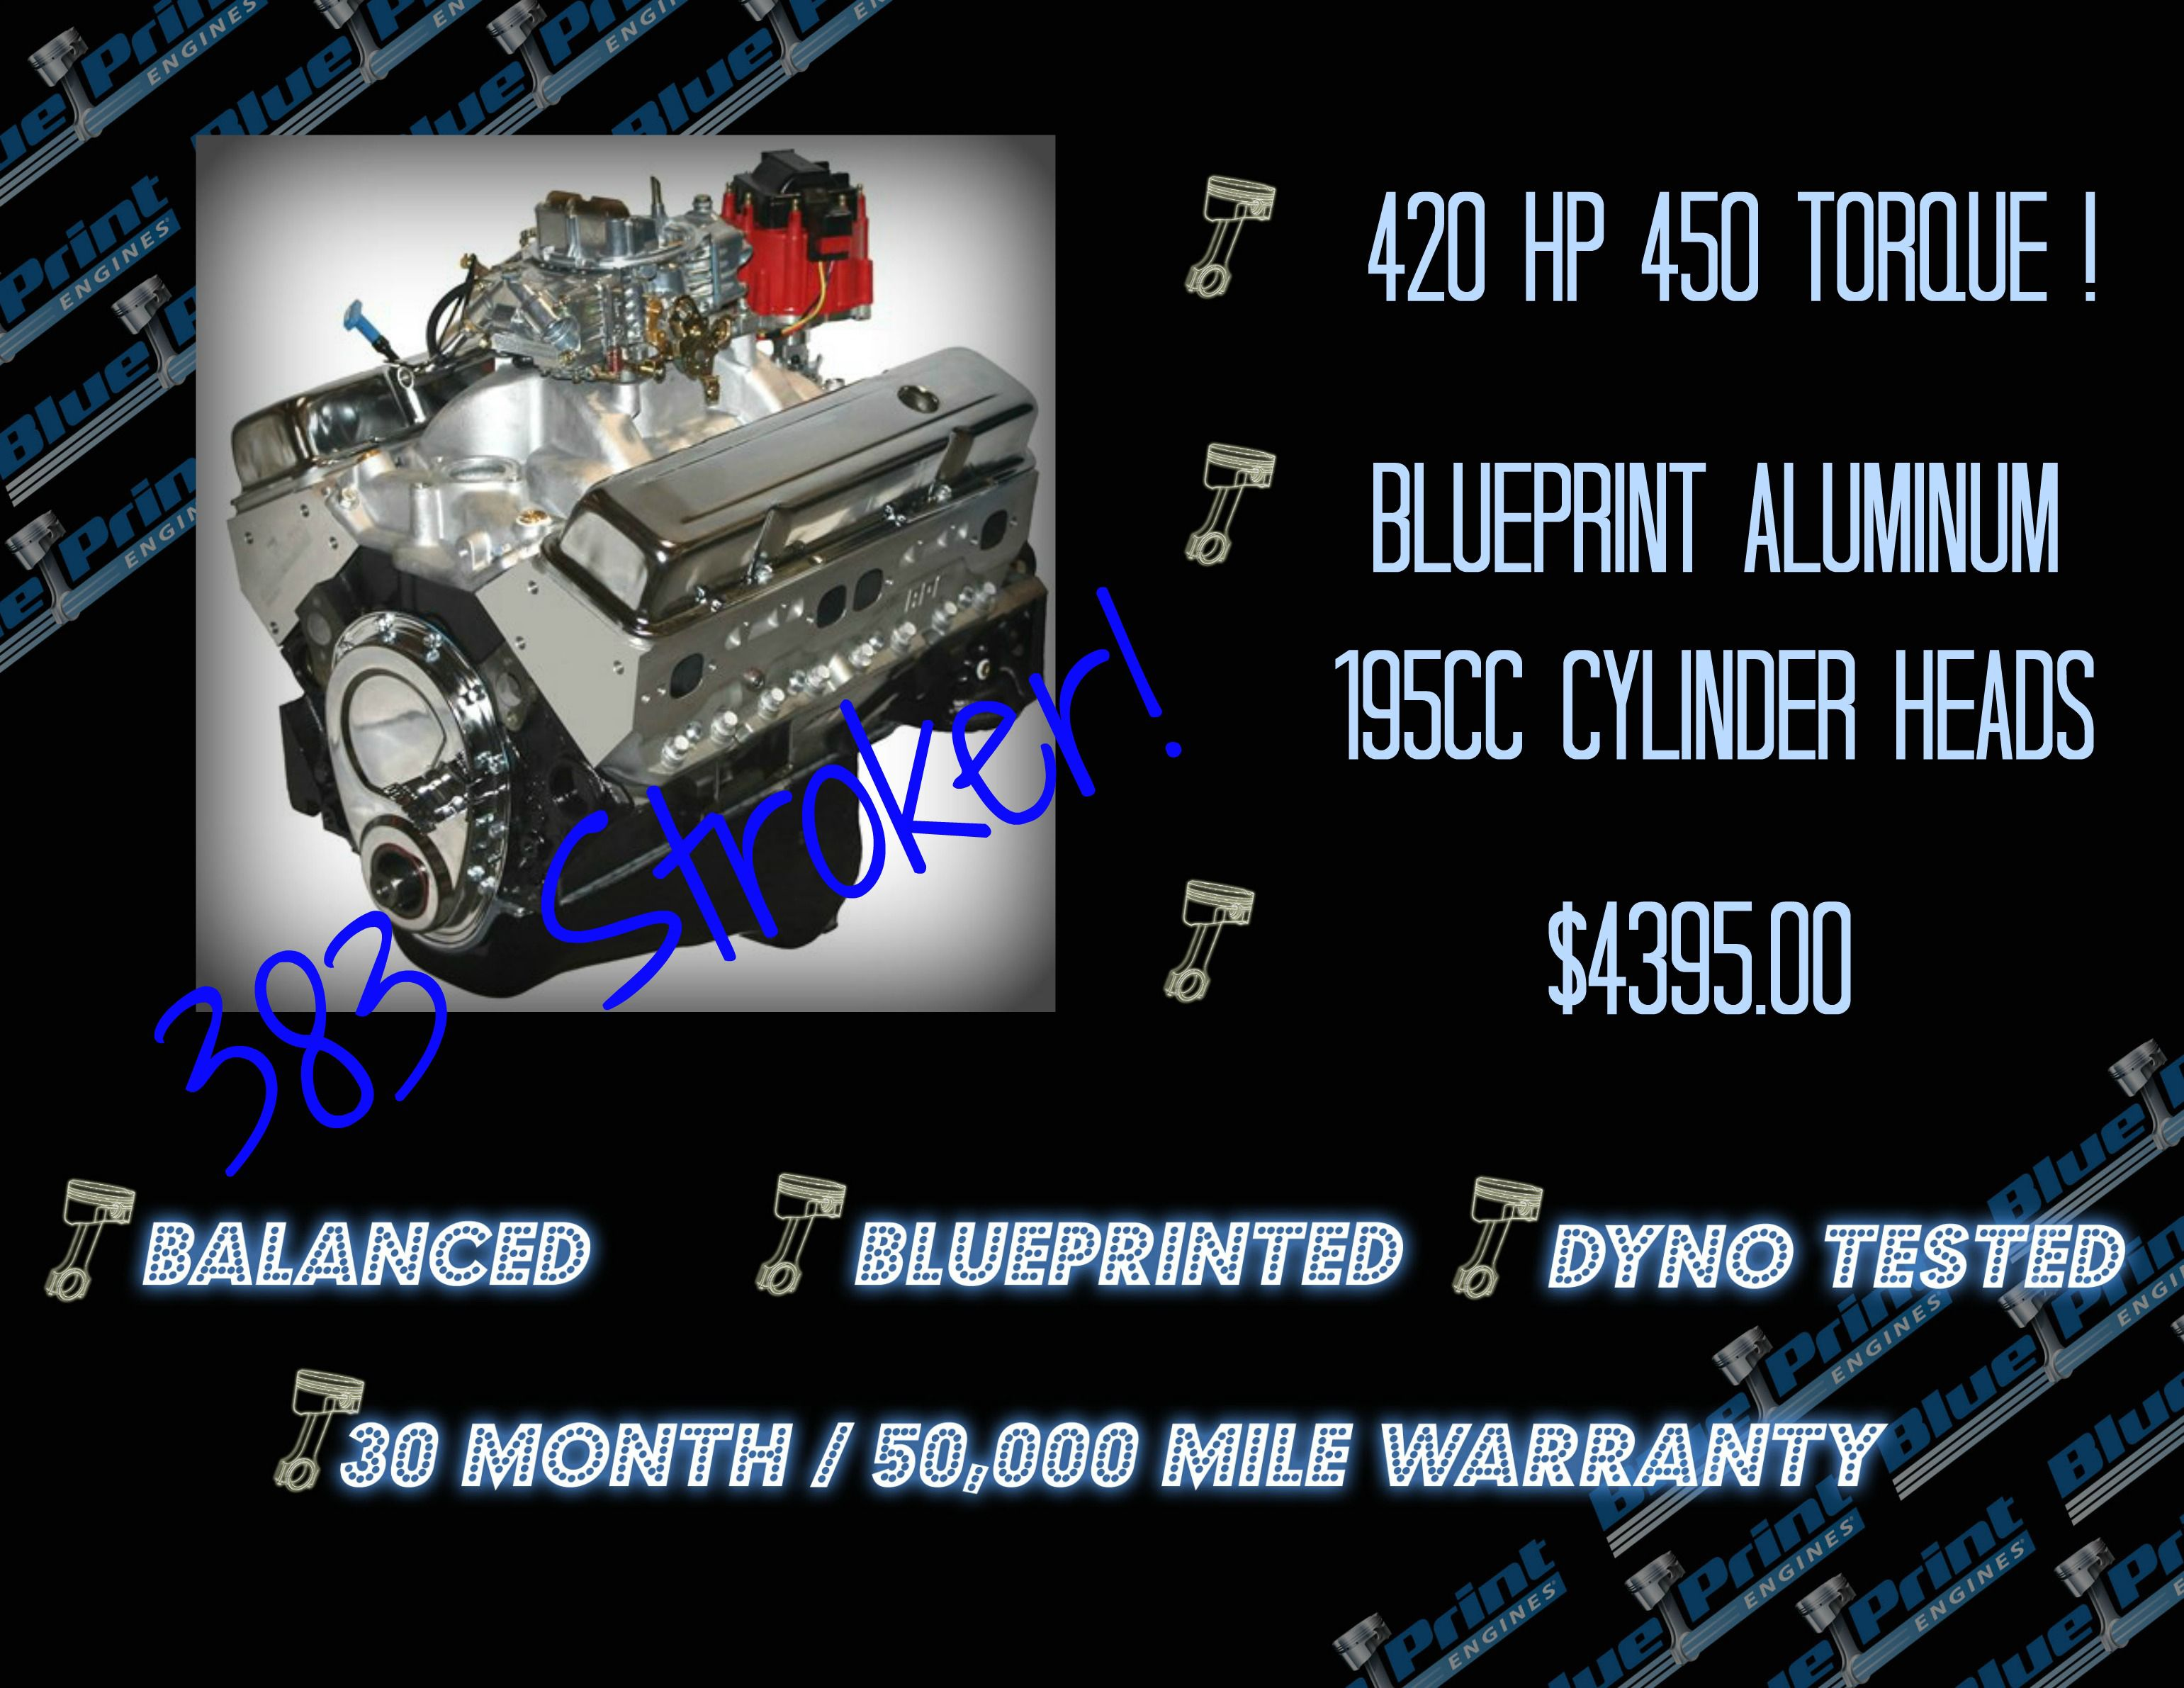 383ci stroker crate engine small block gm style dressed blueprint engines part number bp3834ctc1 is one of many 383 choices blueprint offers to customers in malvernweather Image collections